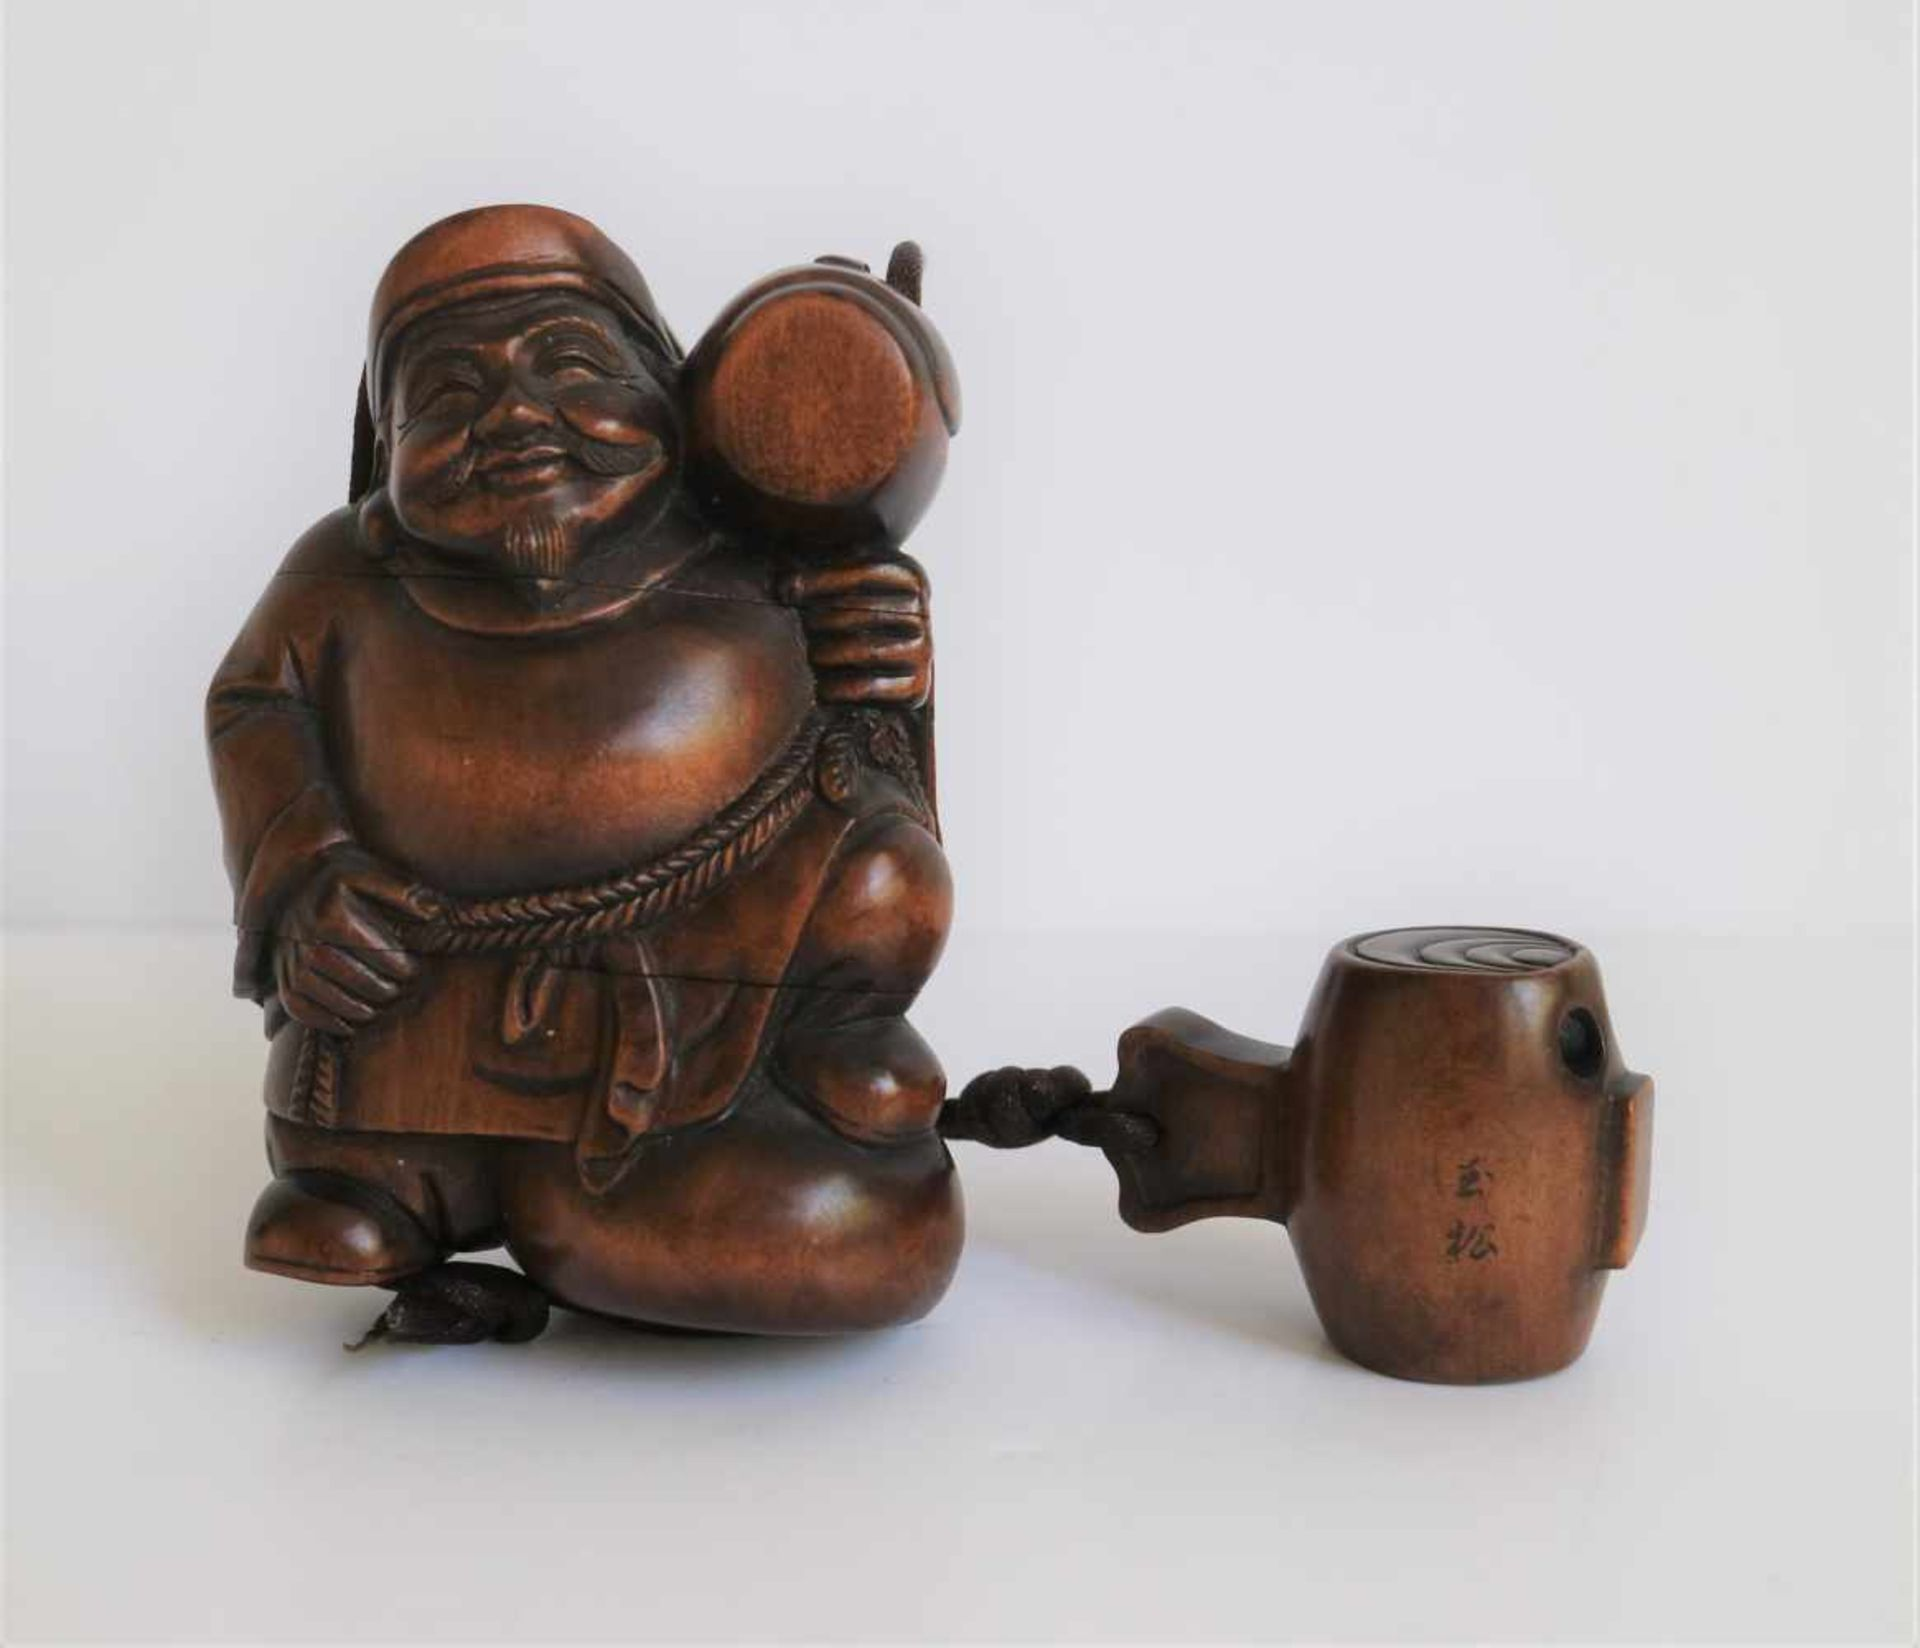 Los 707 - Wooden 3 section inro depicting Daikoku Daikoku, God of thunder holding his mallet, Japan 20th